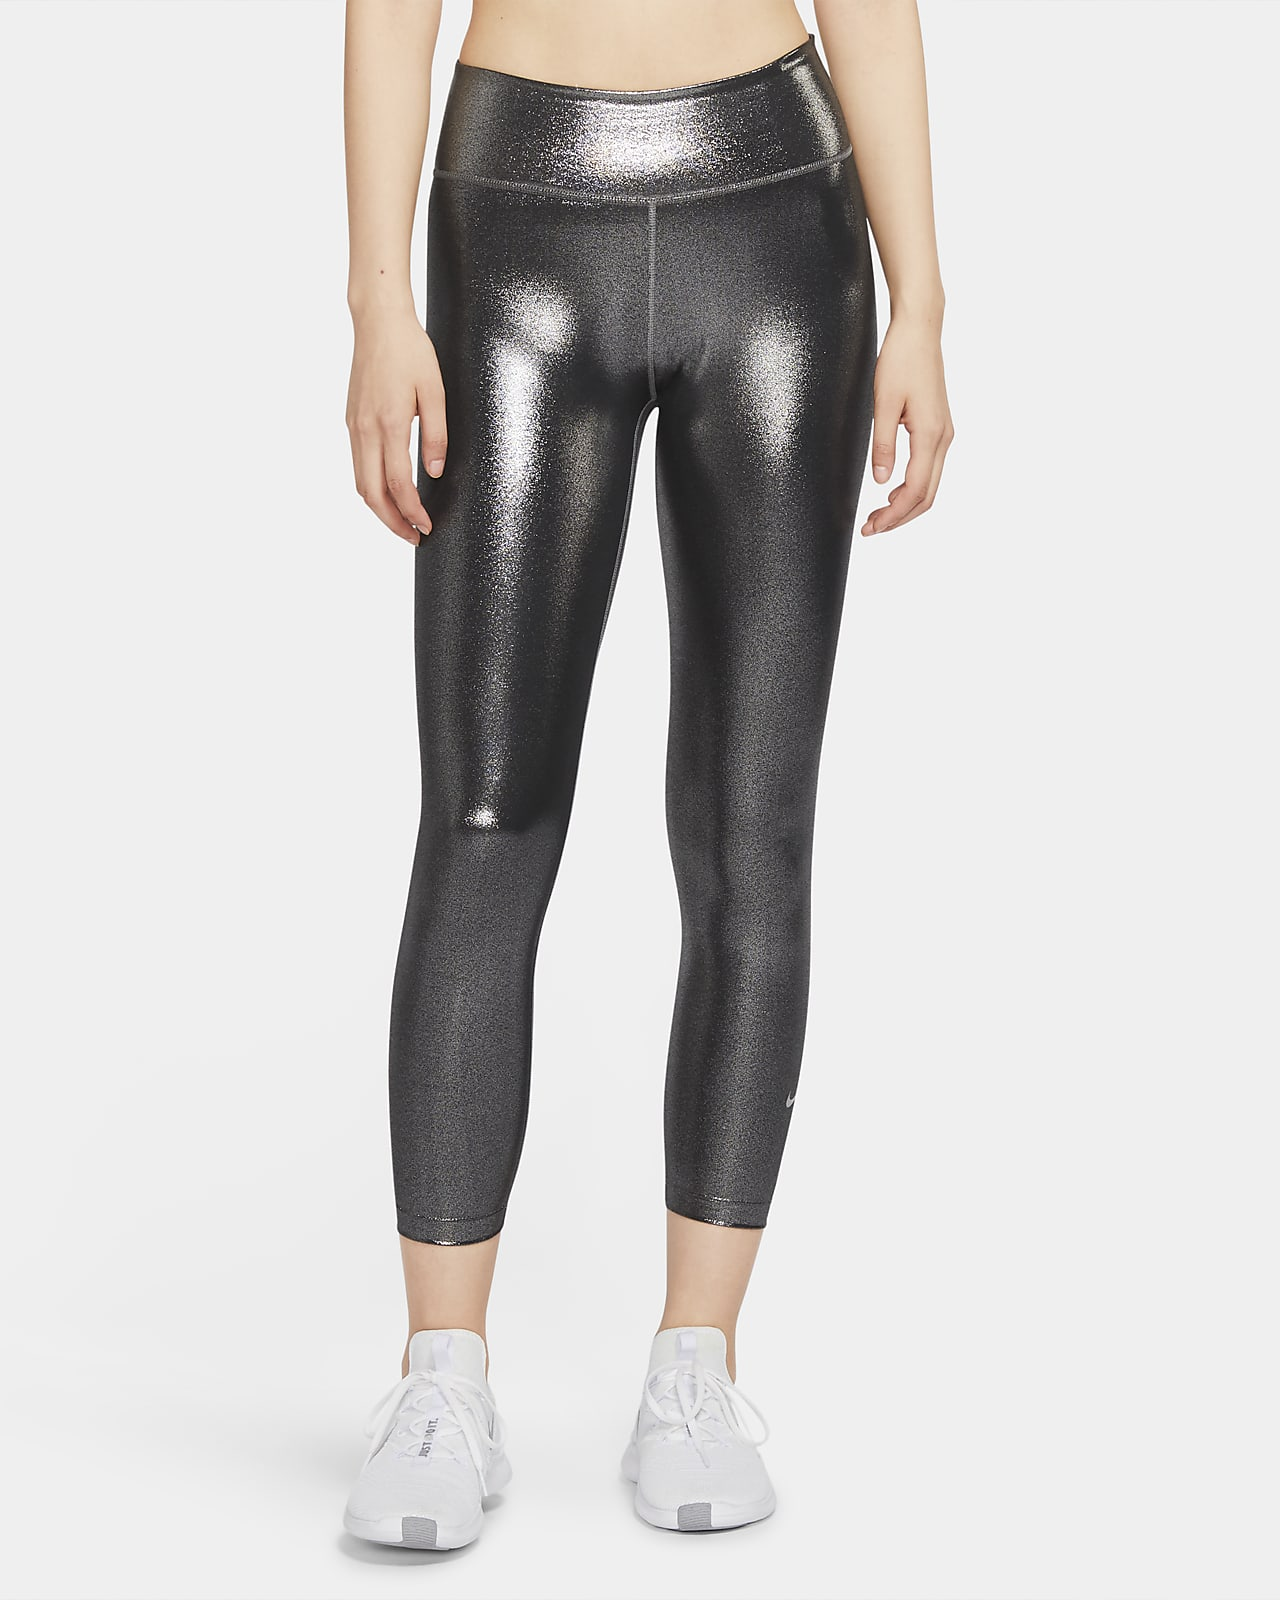 Nike One Icon Clash Women's Mid-Rise 7/8 Shimmer Leggings